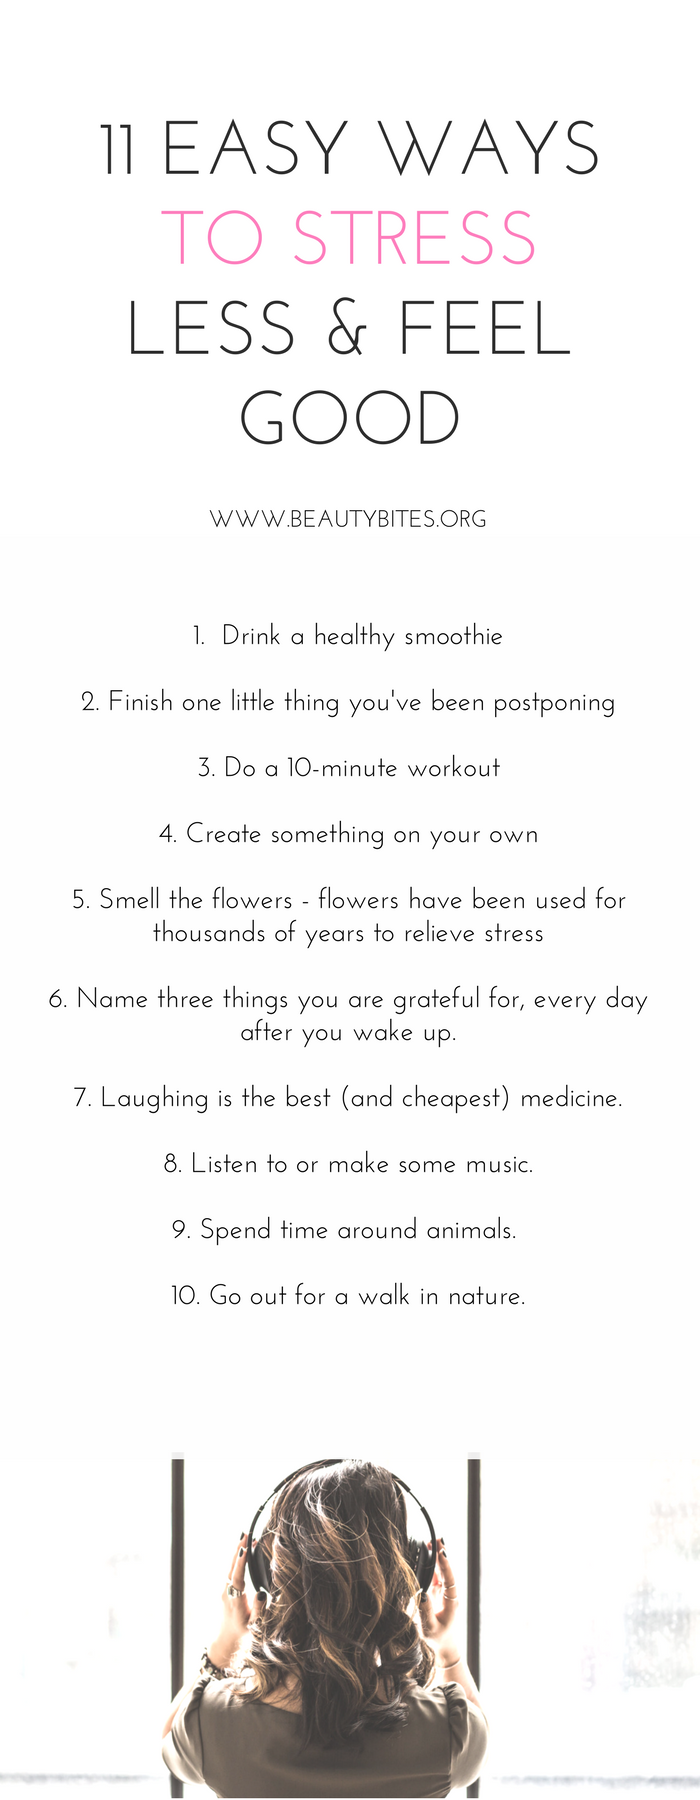 11 easiest ways to stress less and feel good! Doing these 11 things more often always helps me reduce stress and relax! http://www.beautybites.org/11-little-things-make-feel-good-today-no-matter-crazy-busy/ | self care routine